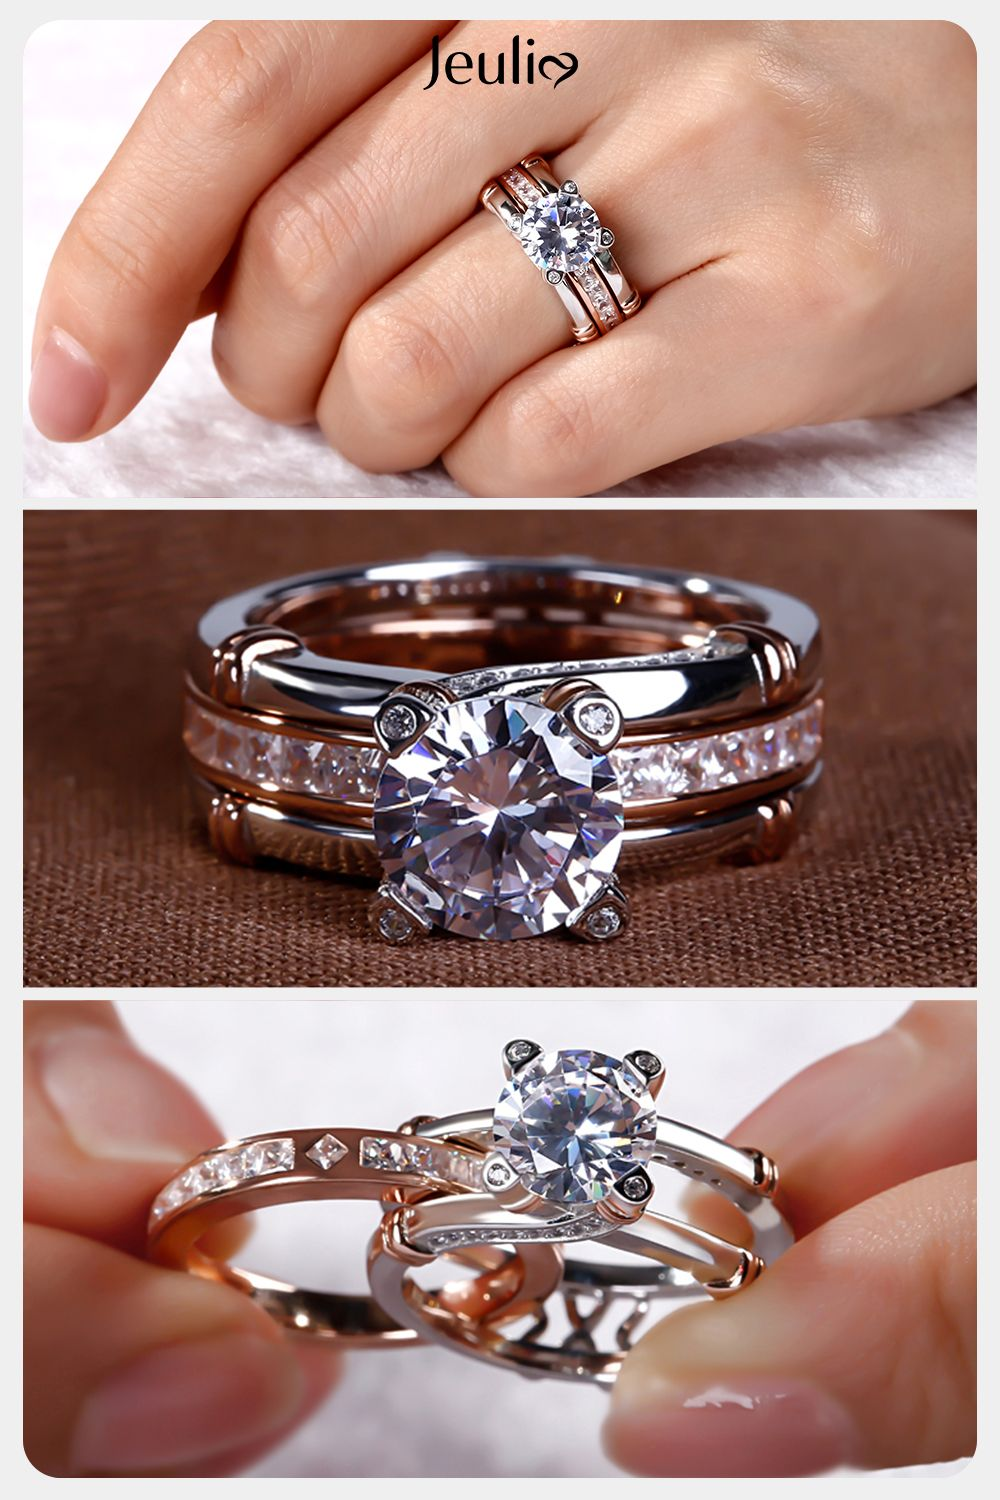 Slyq Jewelry Slyq Jewelry Ring made with Czech crystal for engagement rings